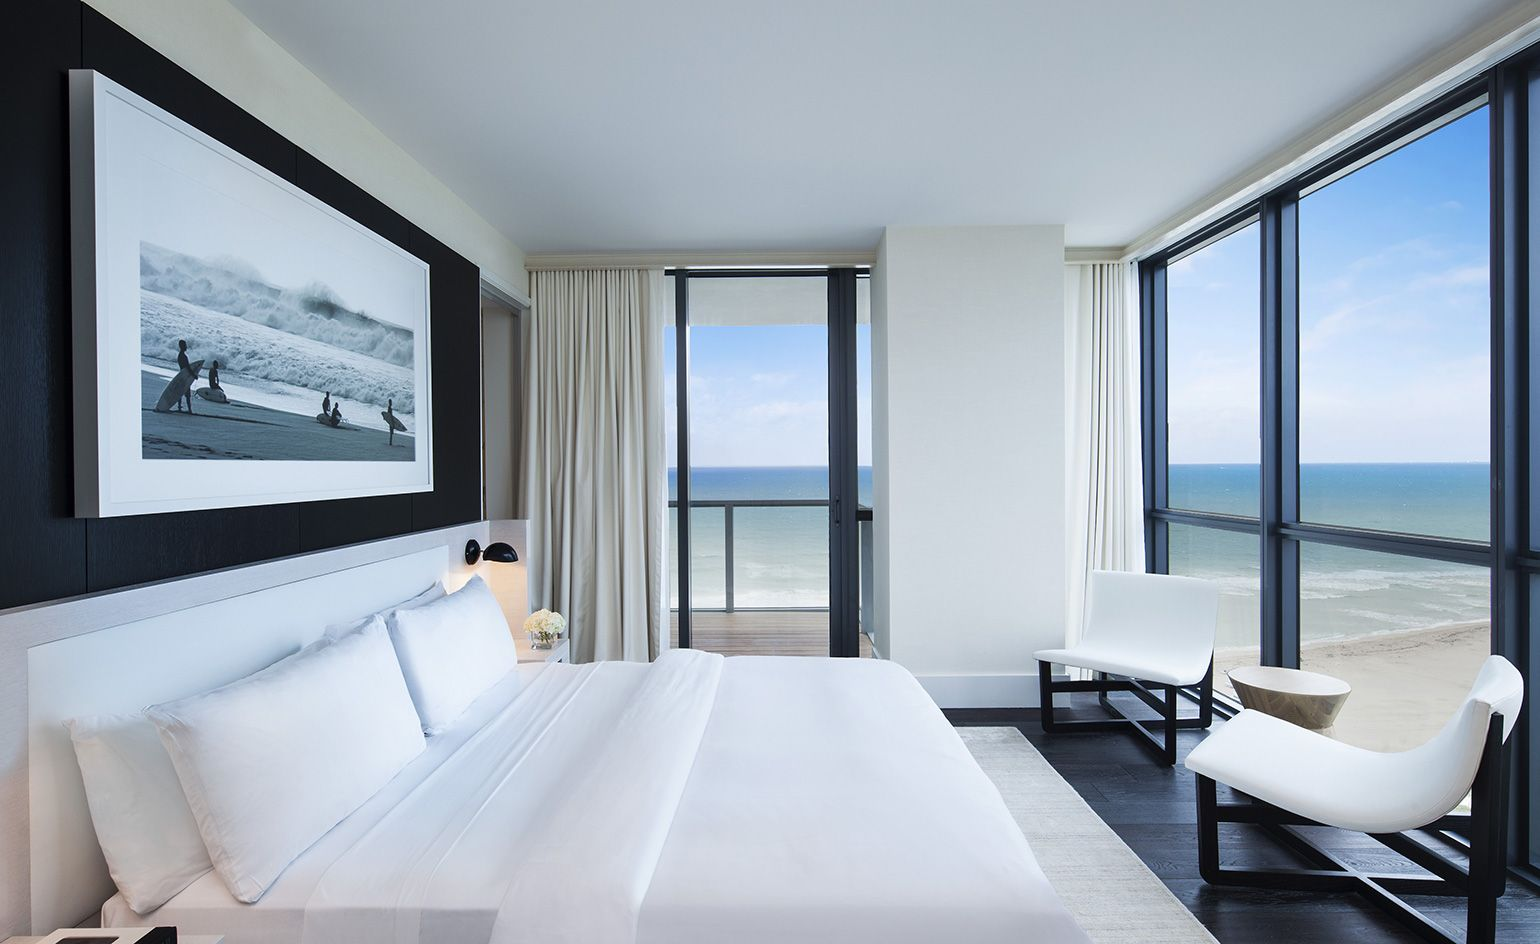 Life S A Beach The Top 10 Miami Hotels 이미지 포함